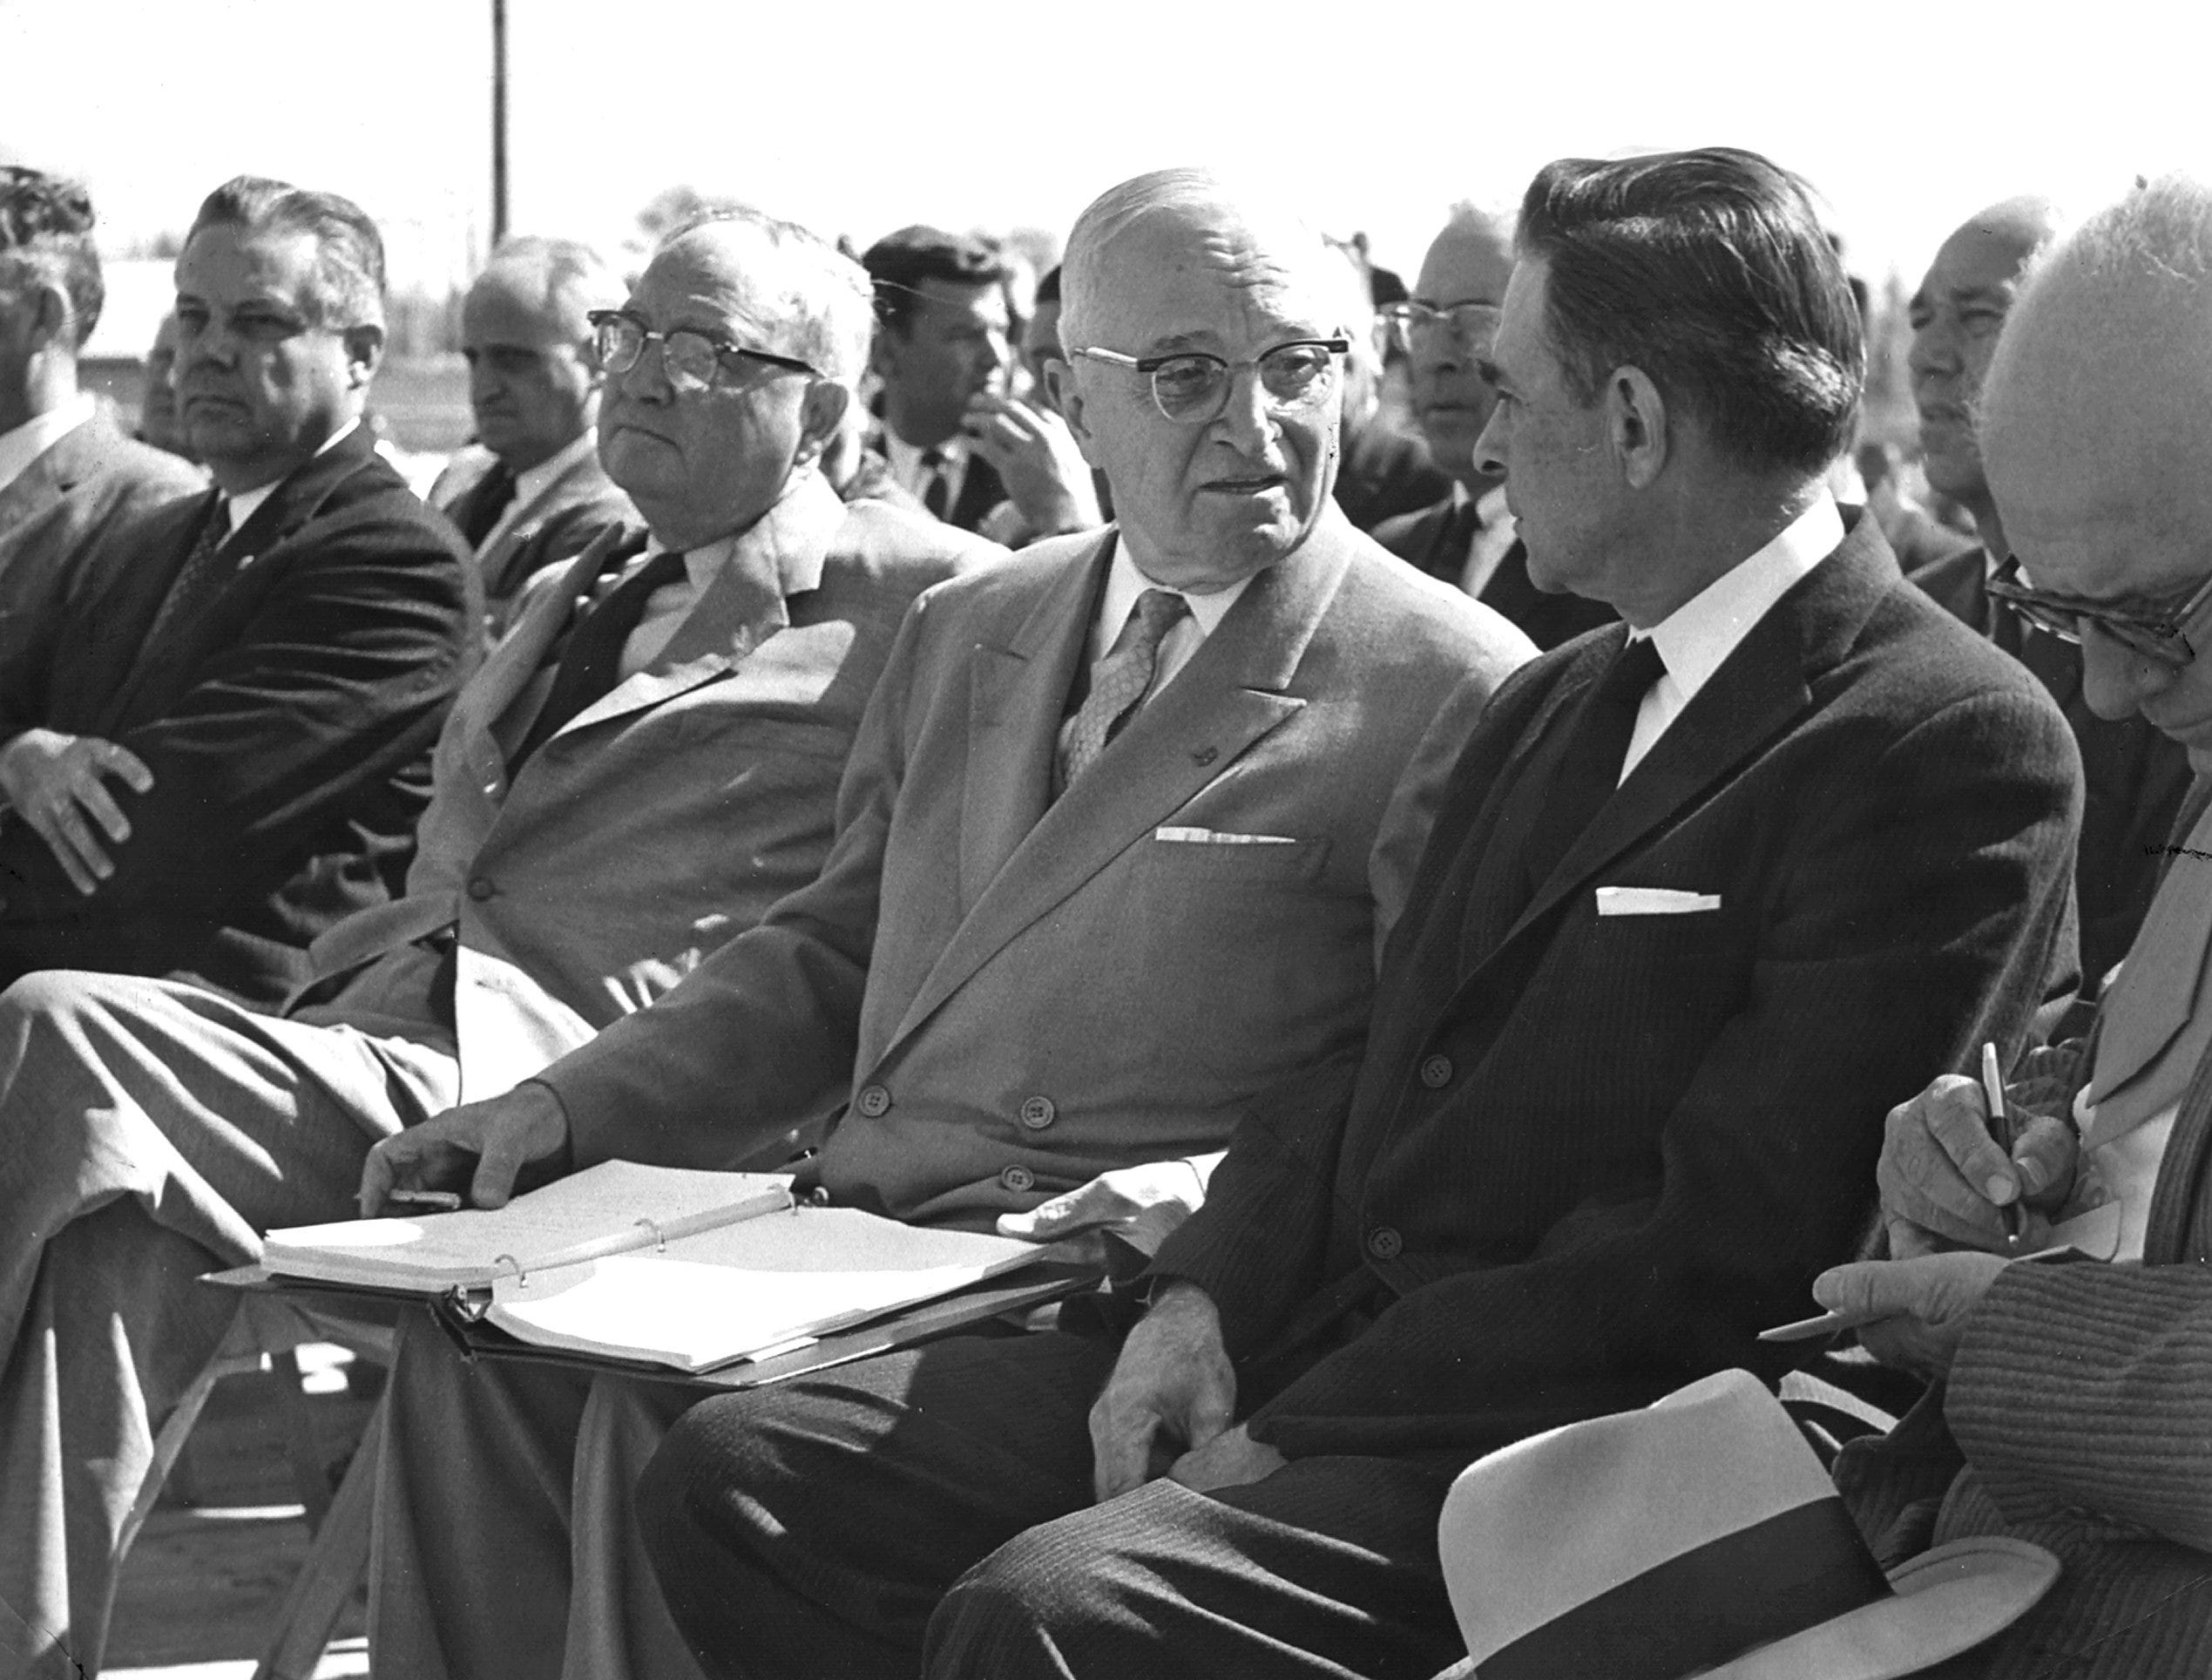 President Harry S. Truman was flanked by Mississippi Democrat loyalists when he spoke in Tupelo on 22 Oct 1960.  Senator James O. Eastland and Representative Thomas G. Abernethy (Right) flanked Mr. Truman.  Tupelo Mayor James L. Ballard is at left.